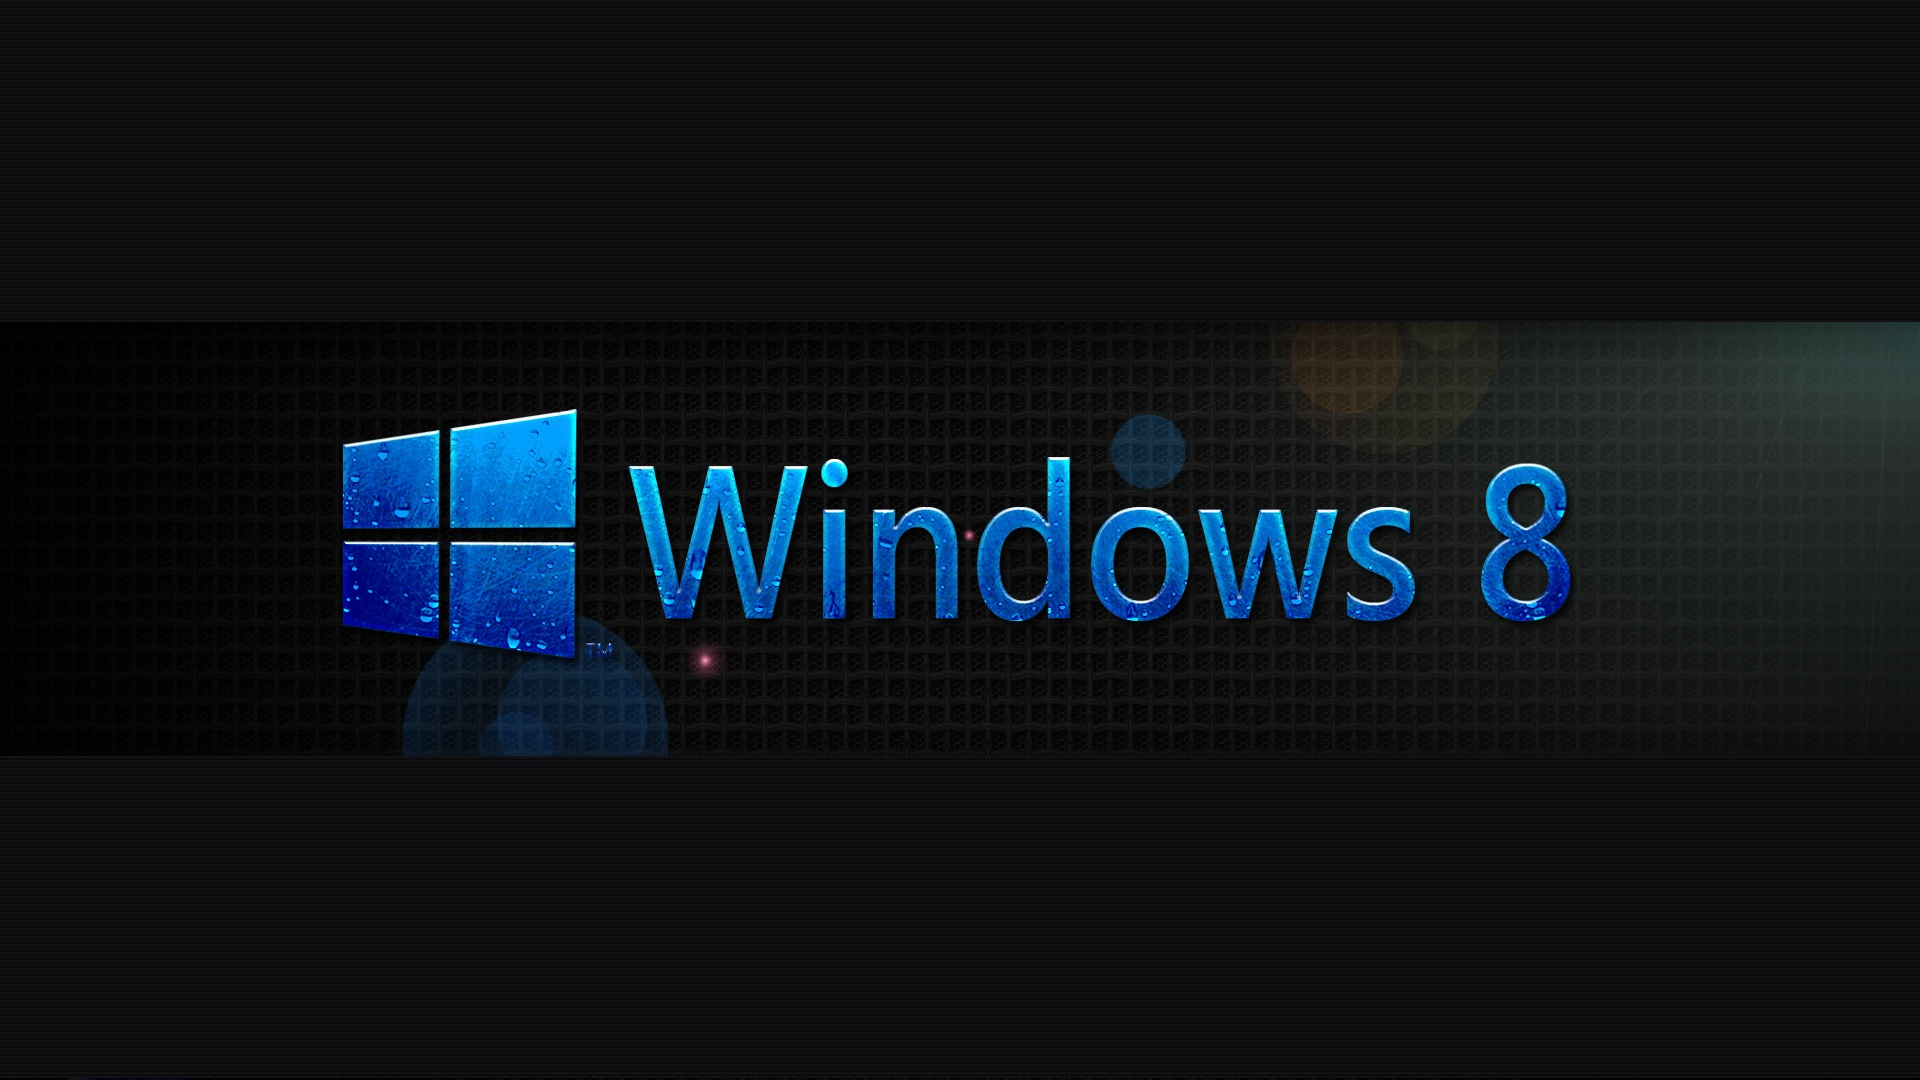 Windows-in-HD-Gallery-Windows-in-HD-Gallery-wallpaper-wpc58010288